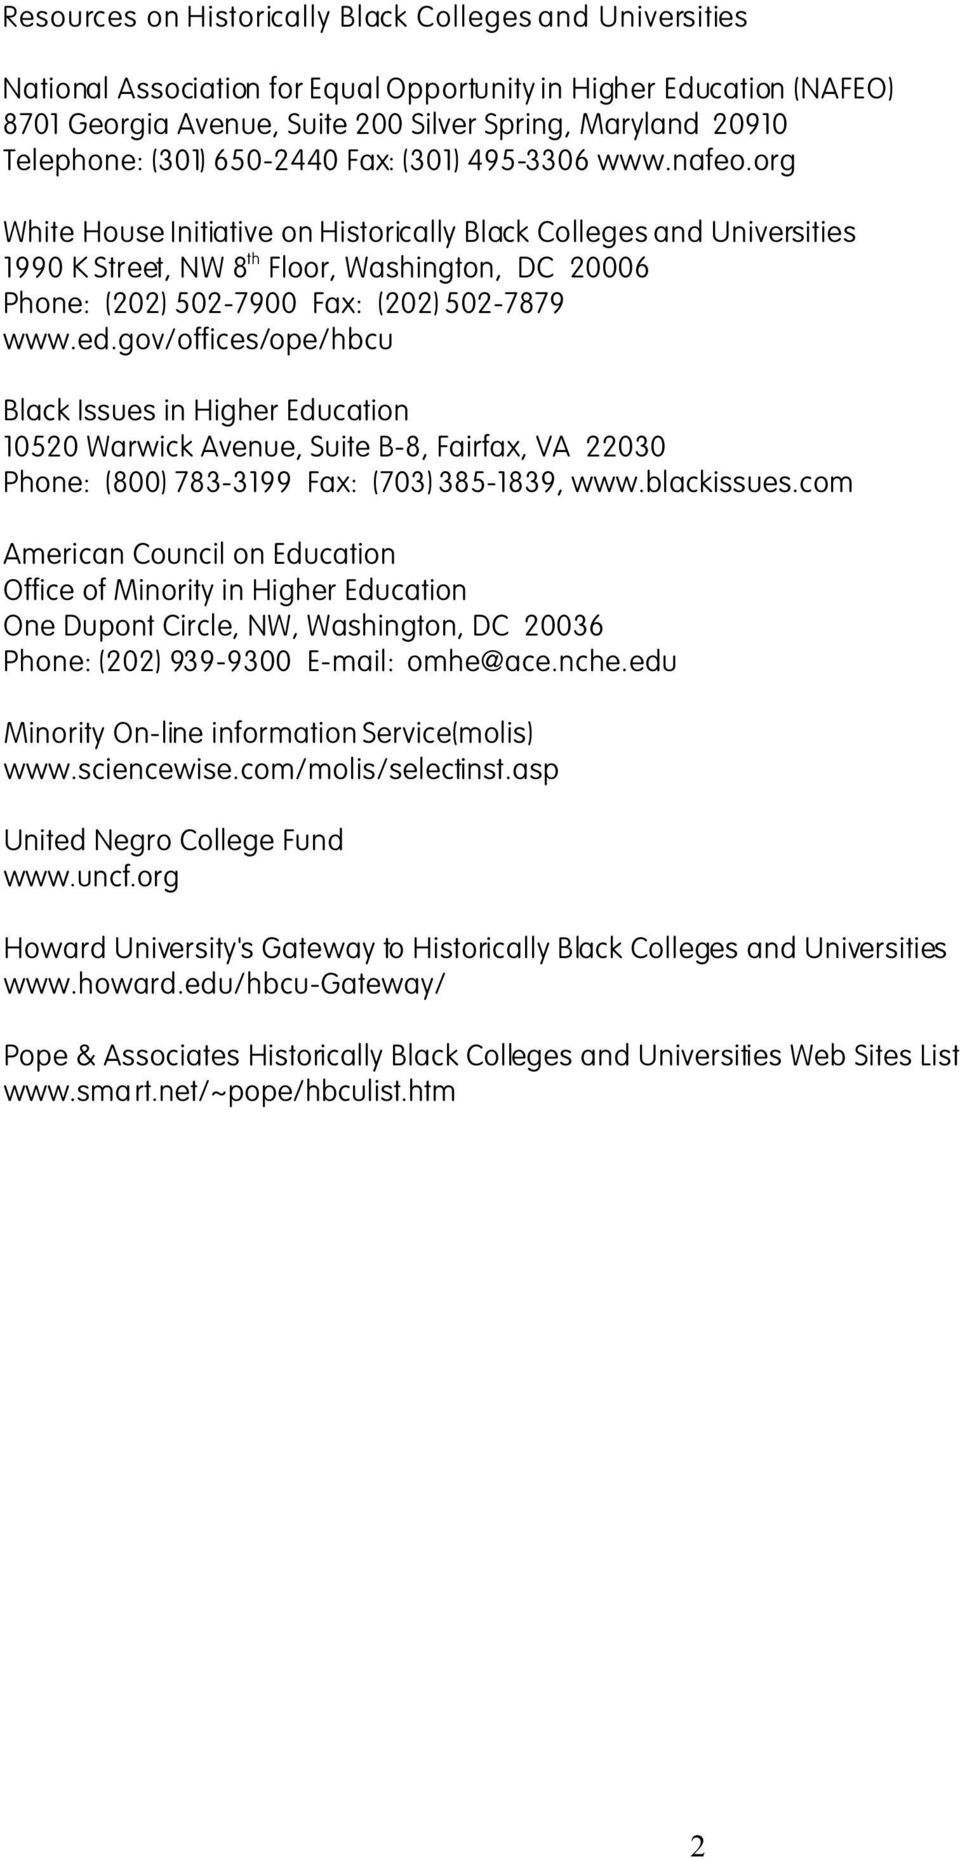 org White House Initiative on Historically Black Colleges and Universities 1990 K Street, NW 8 th Floor, Washington, DC 20006 Phone: (202) 502-7900 Fax: (202) 502-7879 www.ed.